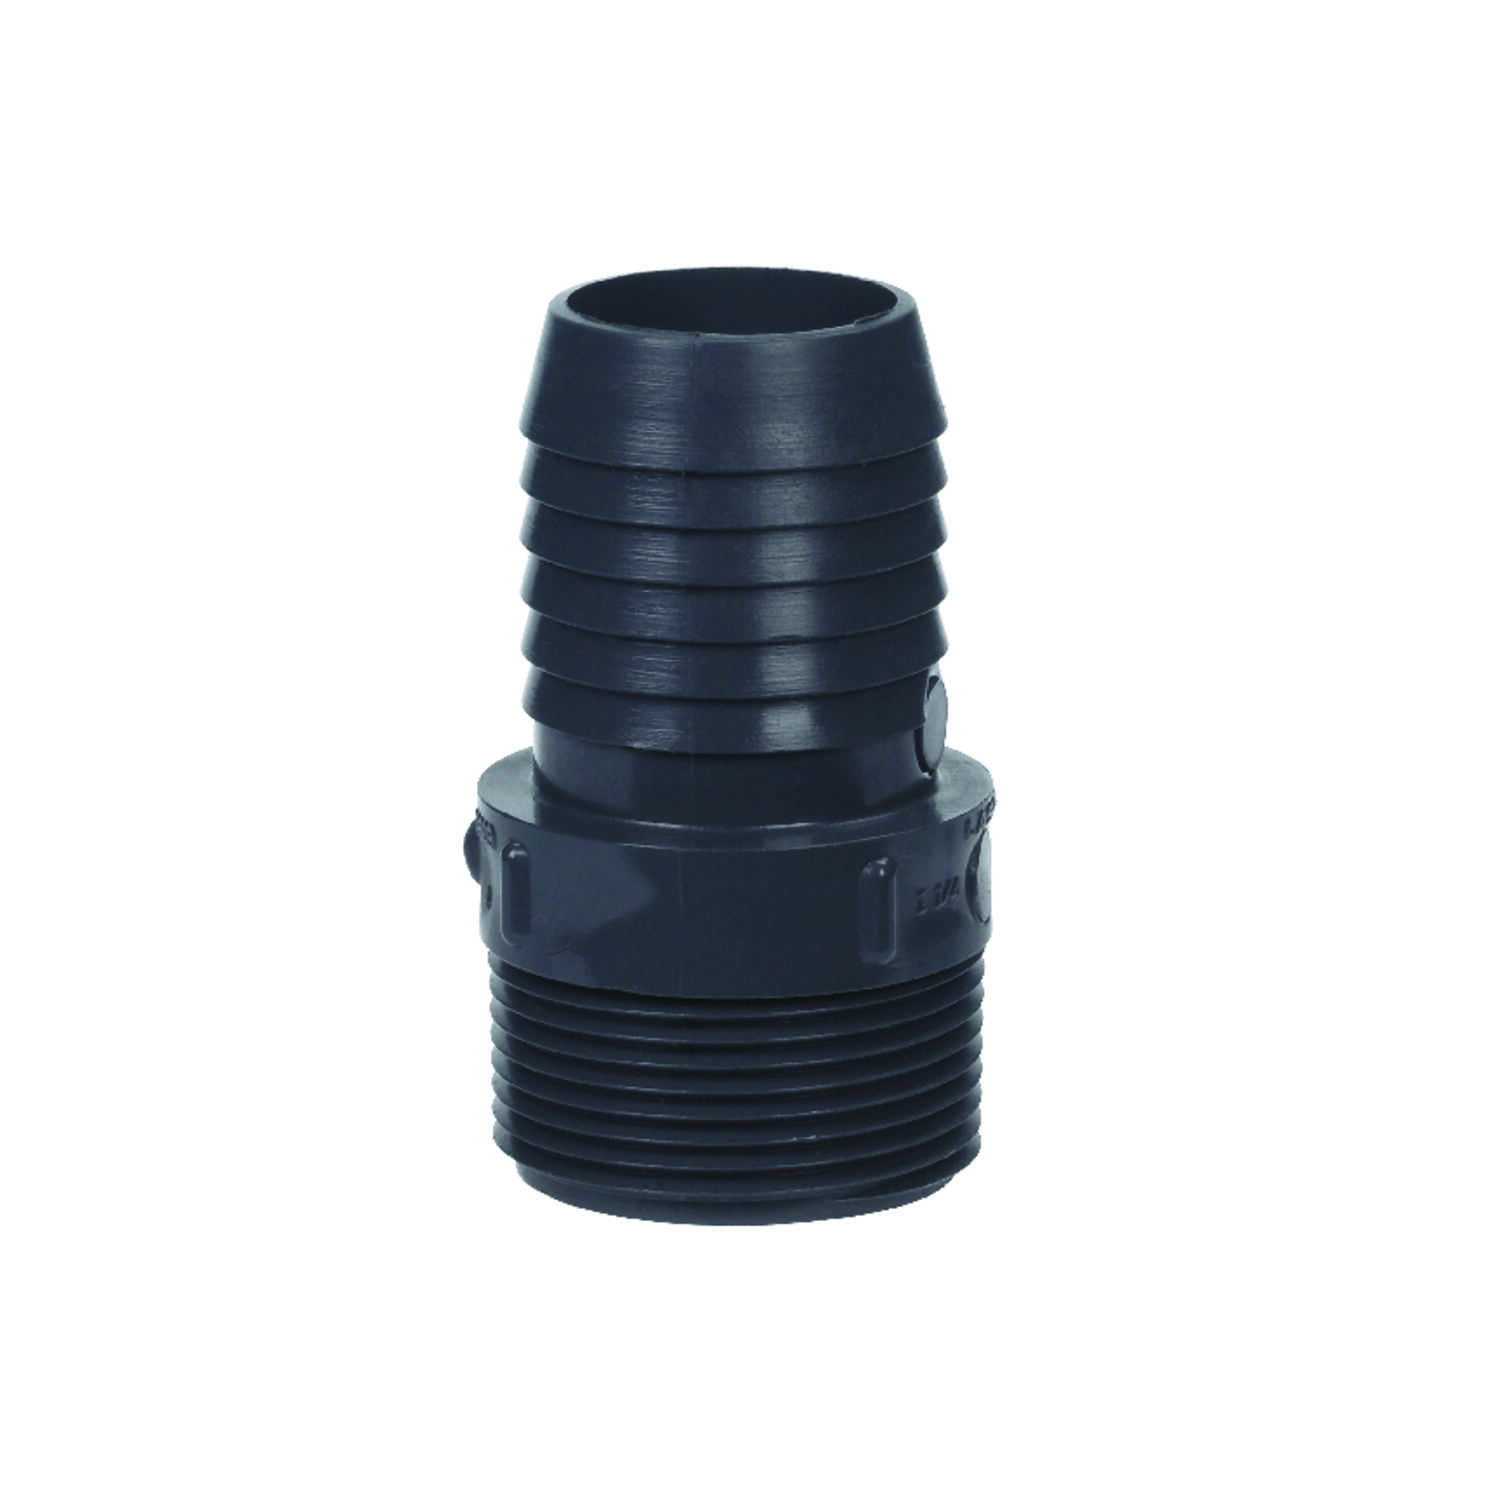 Lasco  1-1/4 in. Insert   x 1-1/4 in. Dia. MPT  Insert Adapter